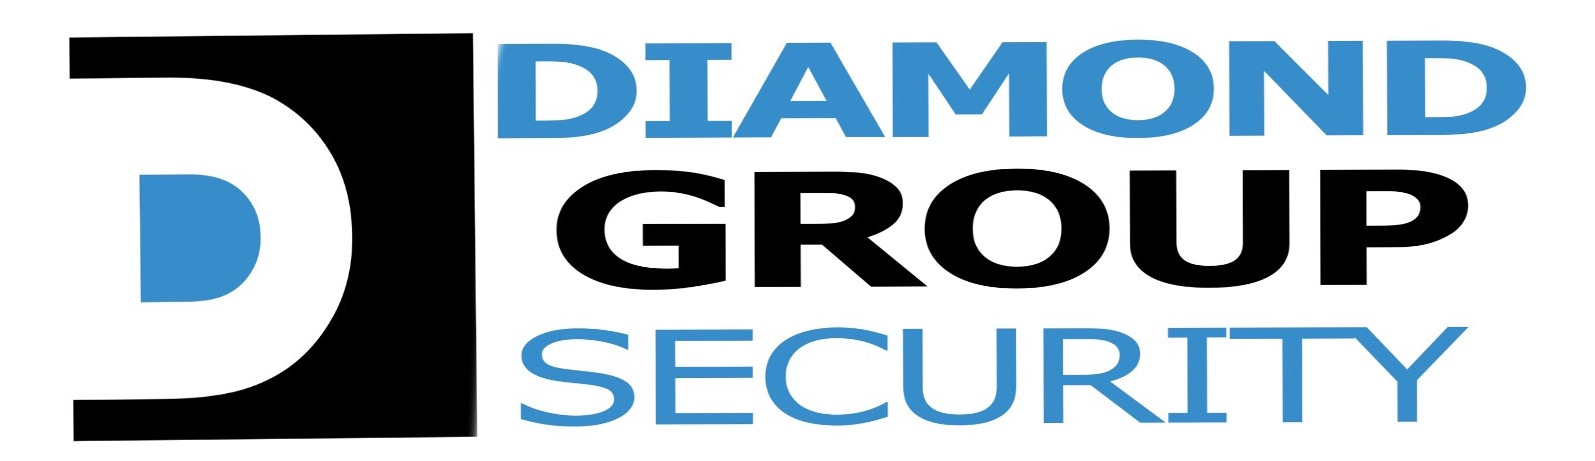 Diamond Group Security